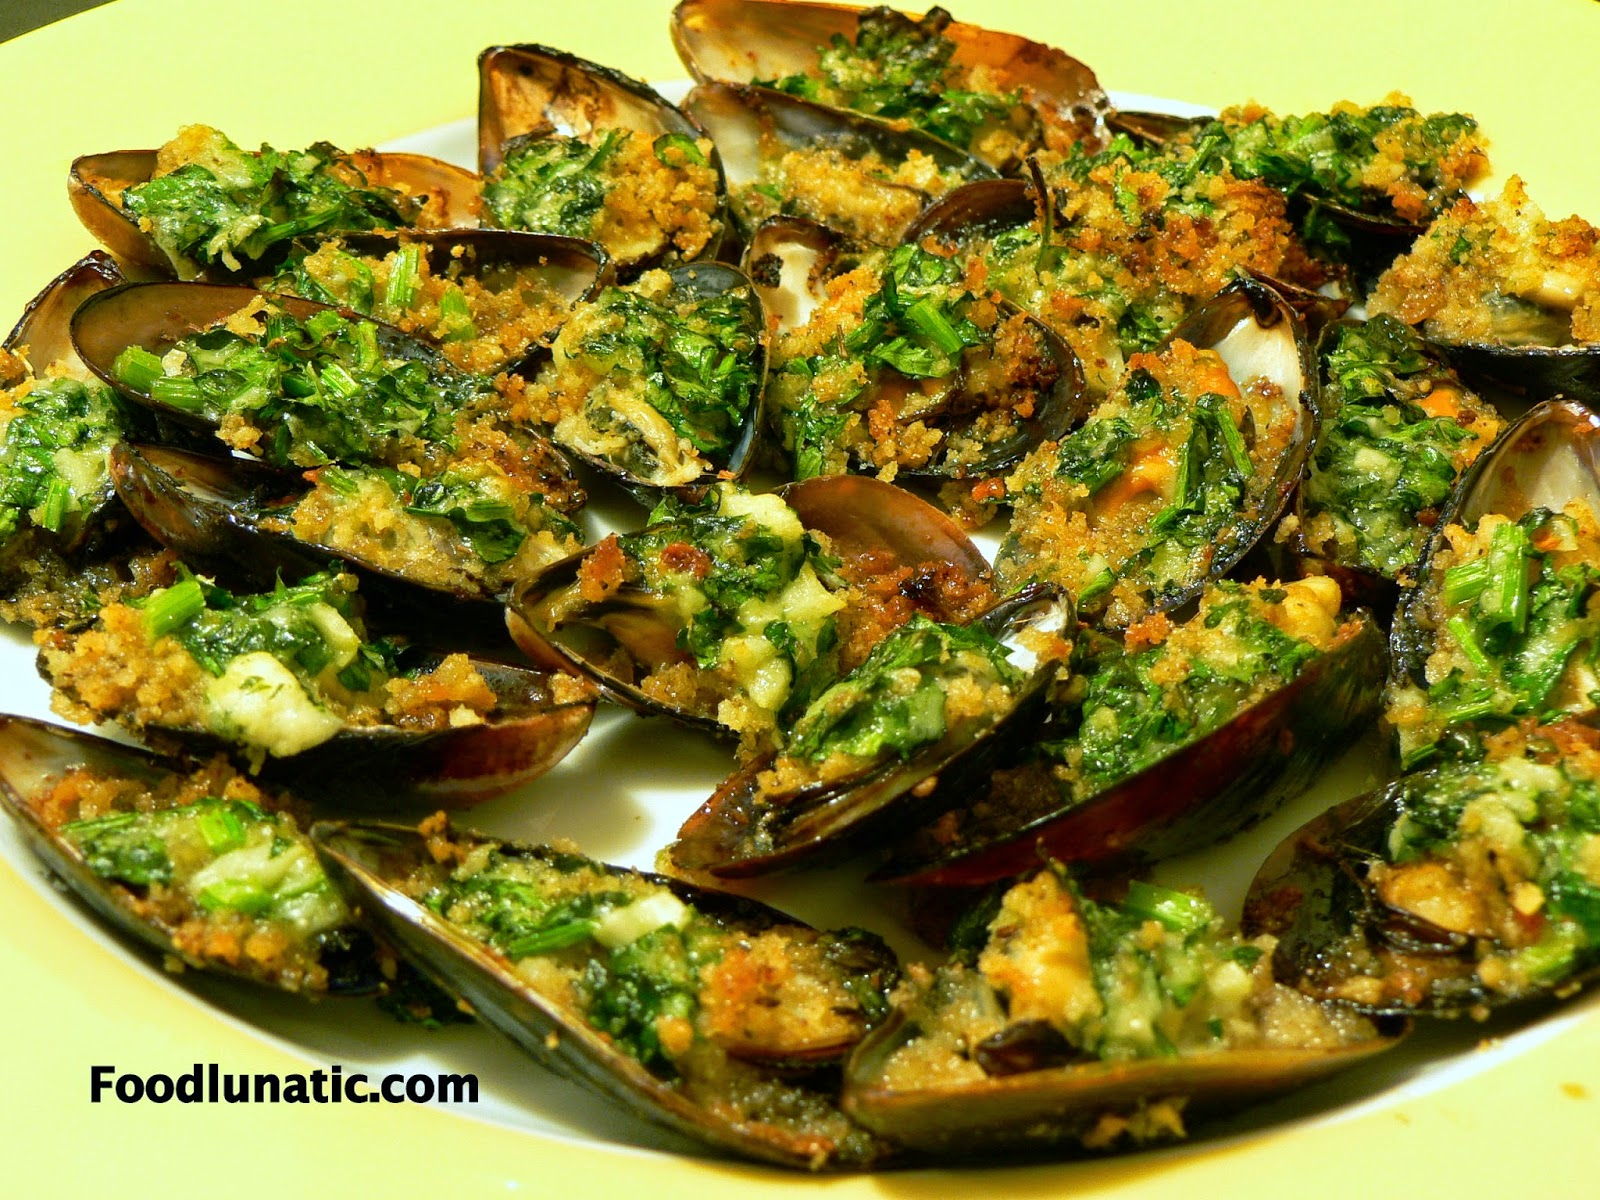 Food Lunatic: Broiled Mussels with Panko Pesto